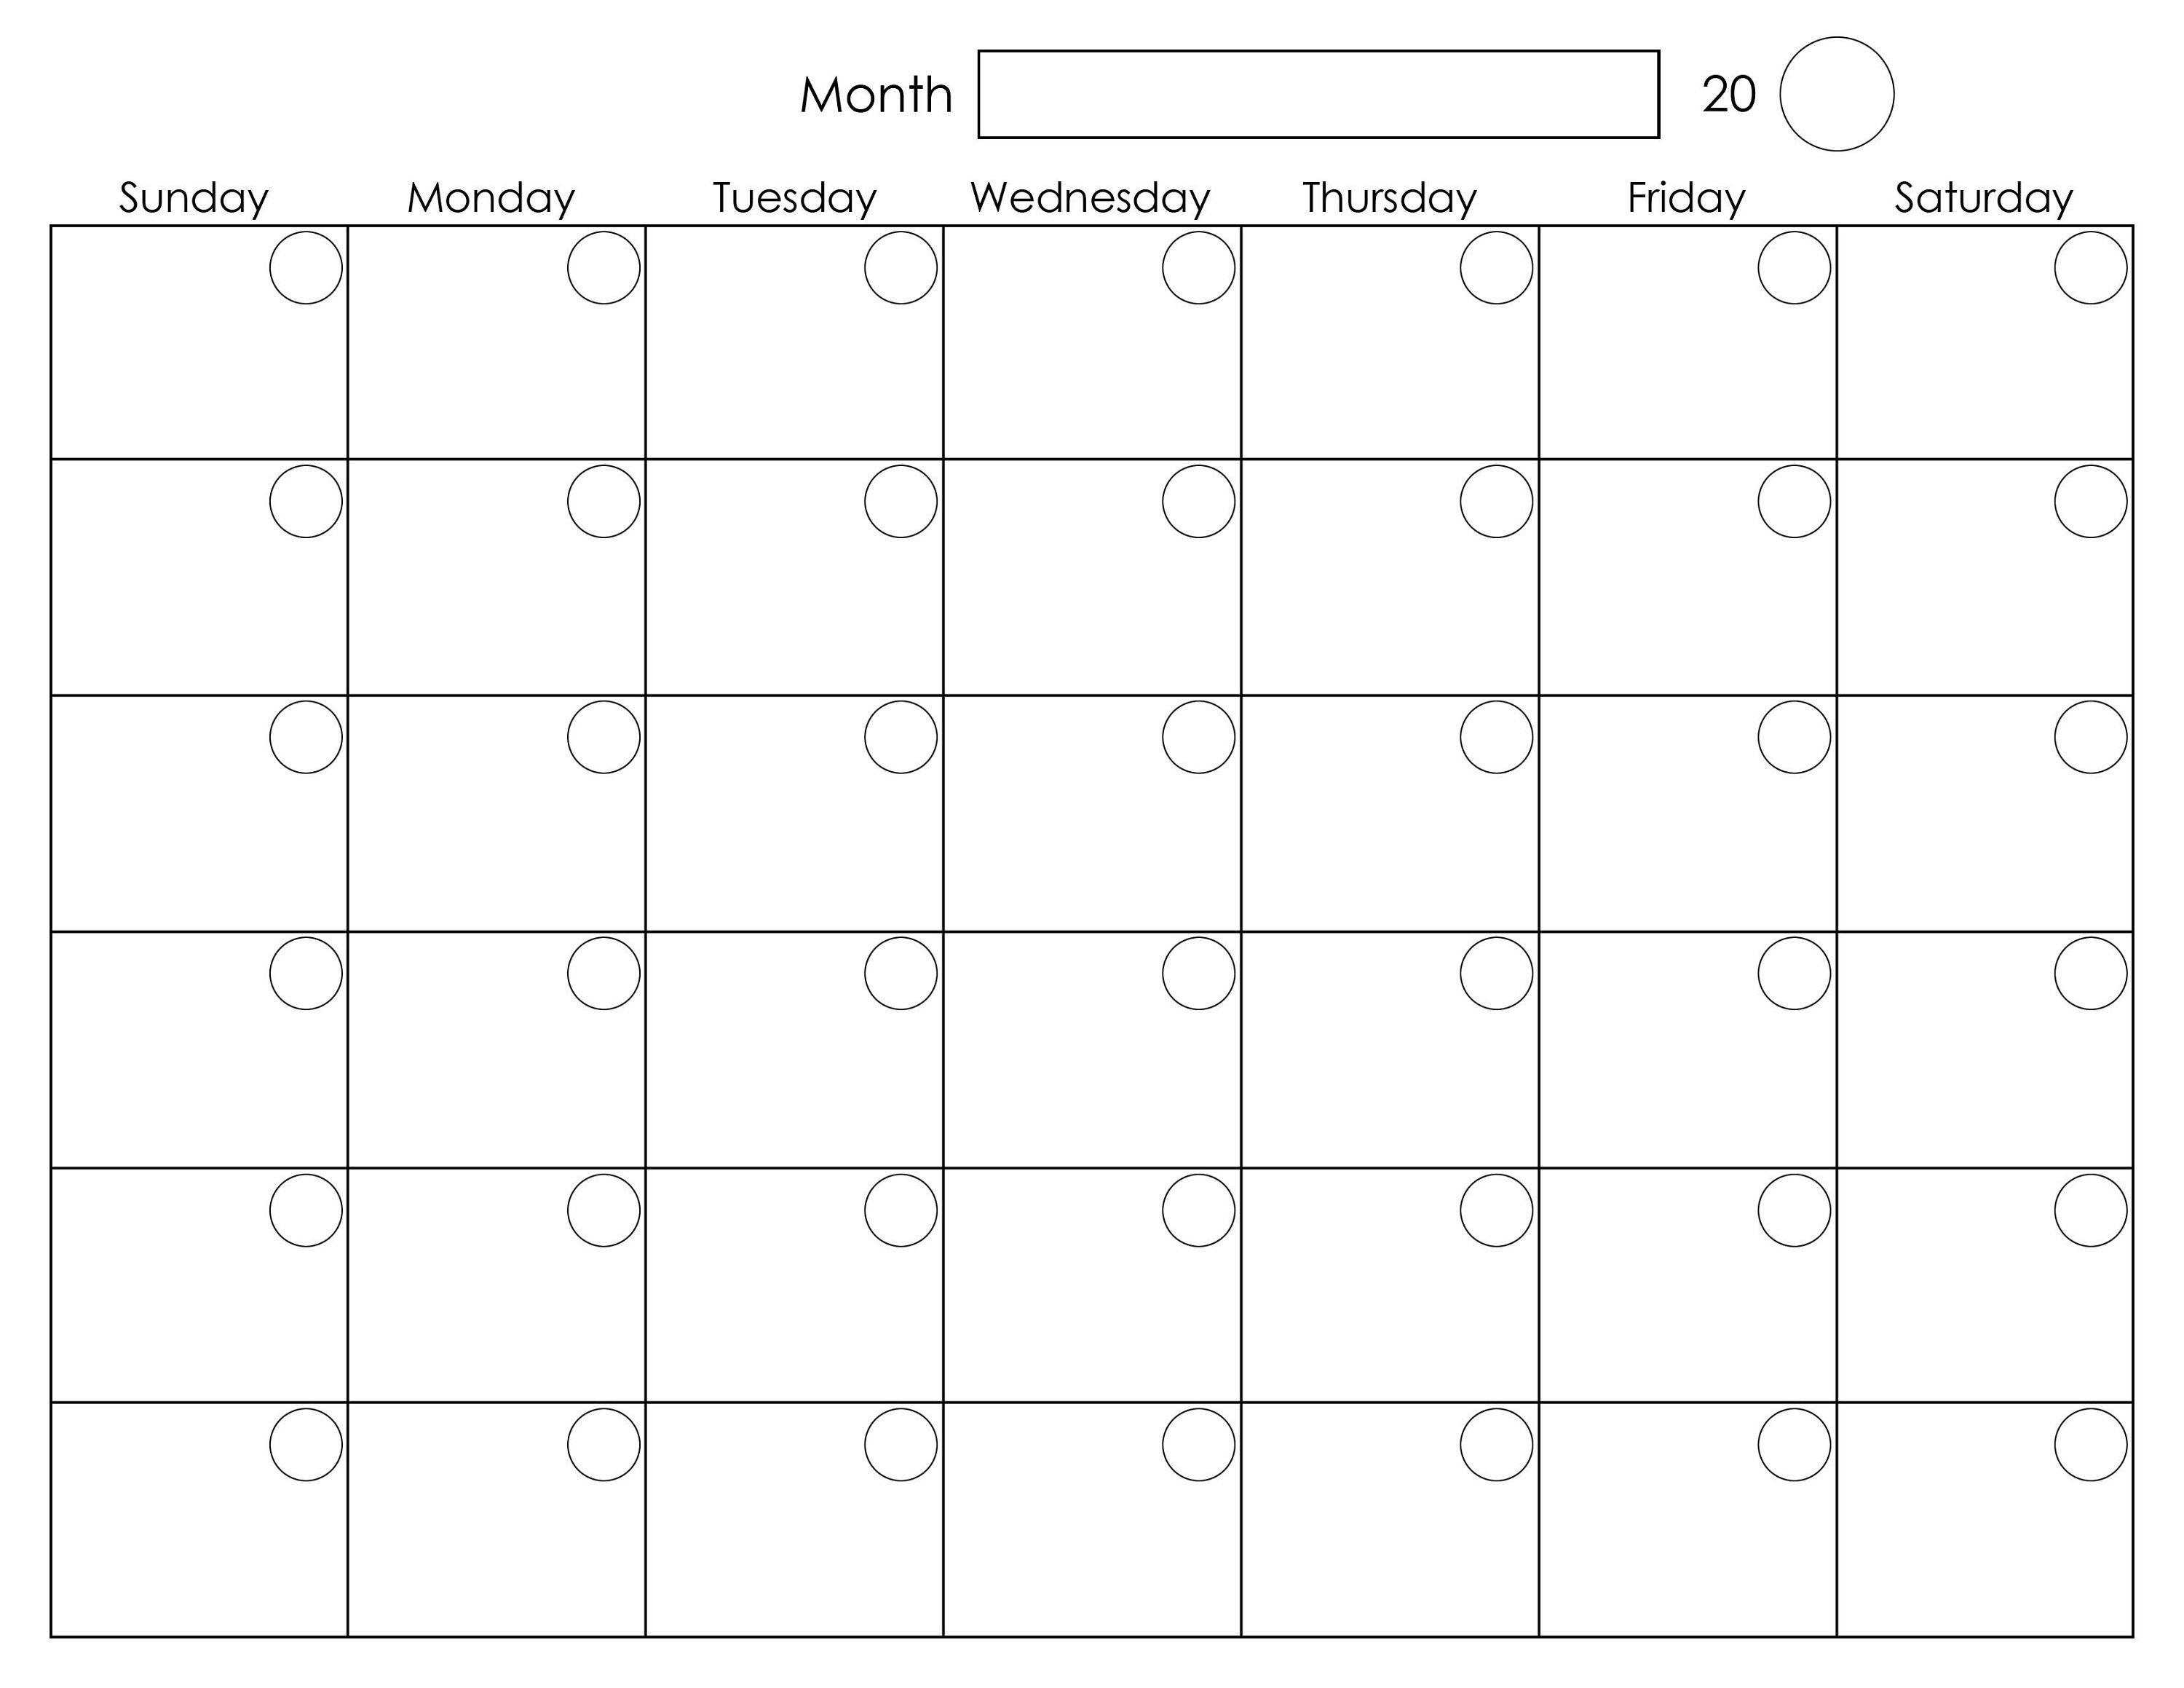 Printable Blank Monthly Calendar | Calendar Template Printable intended for Blank Monthly Calendar Sheets